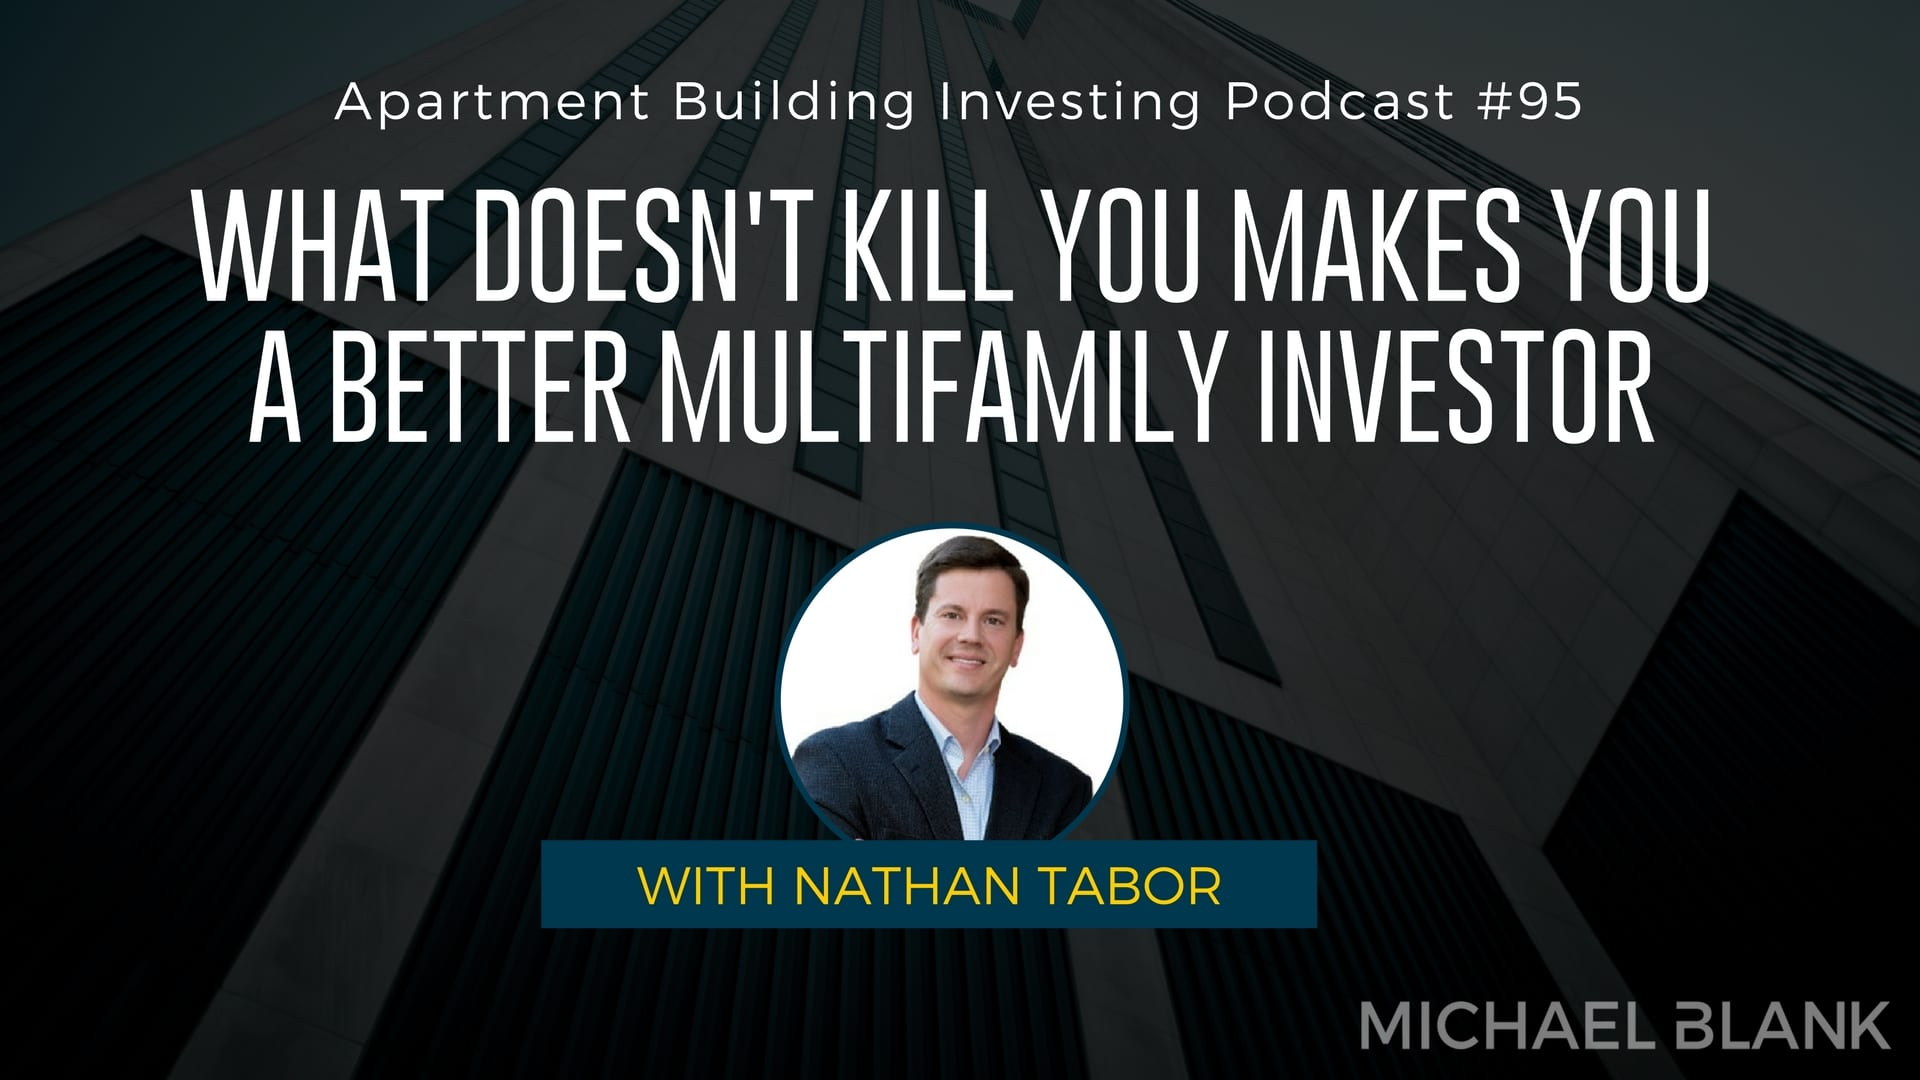 MB 095: What Doesn't Kill You Makes You a Better Multifamily Investor With Nathan Tabor